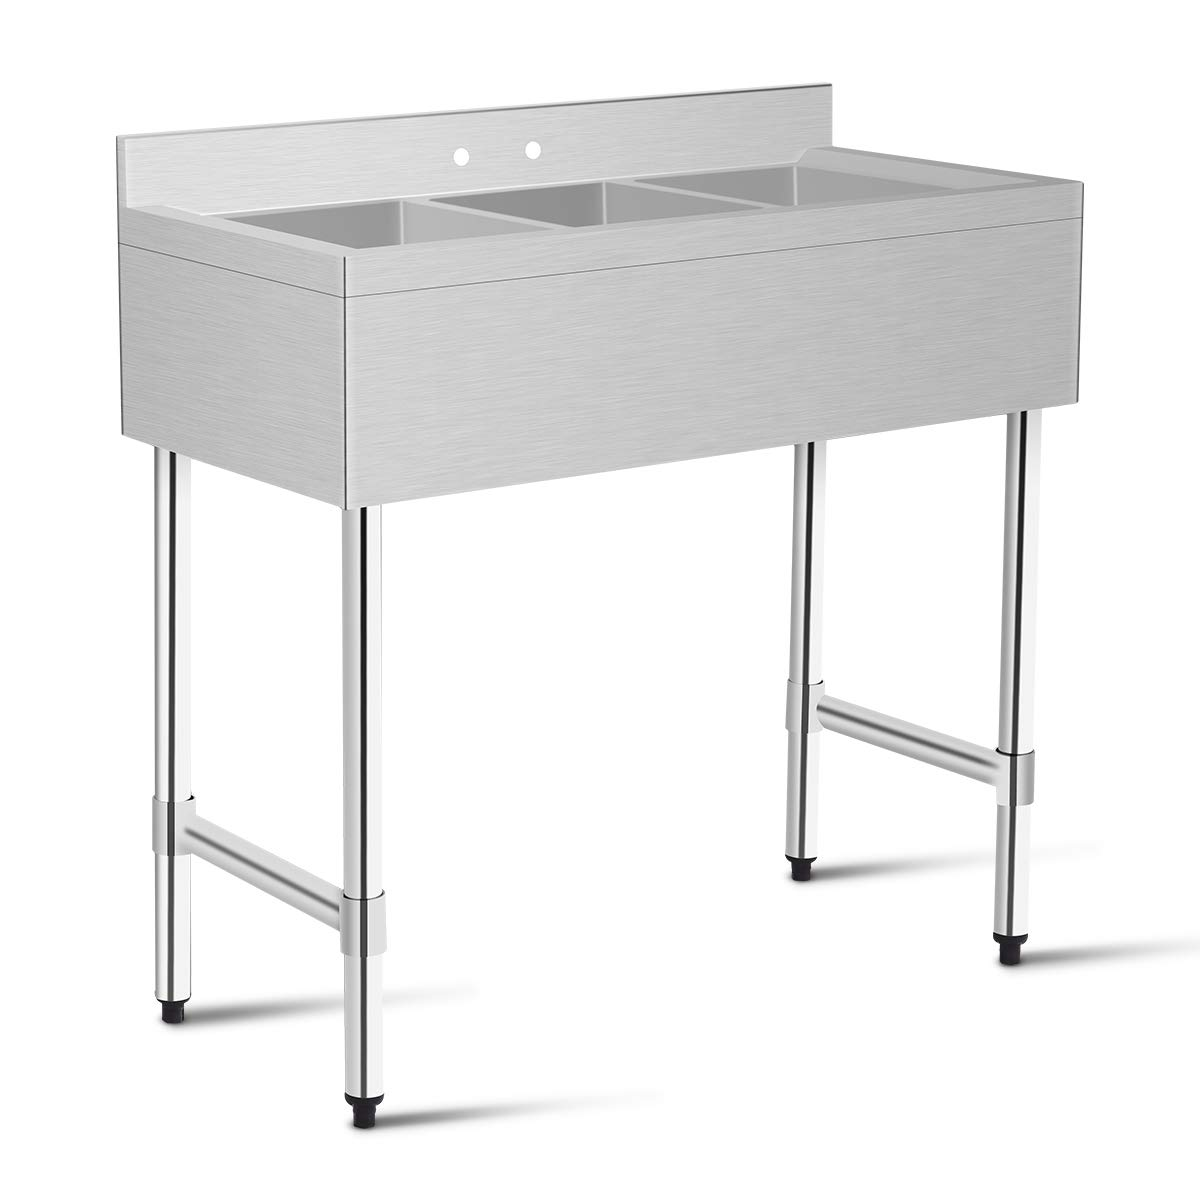 Giantex 3 Compartment Sink Kitchen Prep & Utility Sink Heavy Duty Stainless Steel Commercial by Giantex